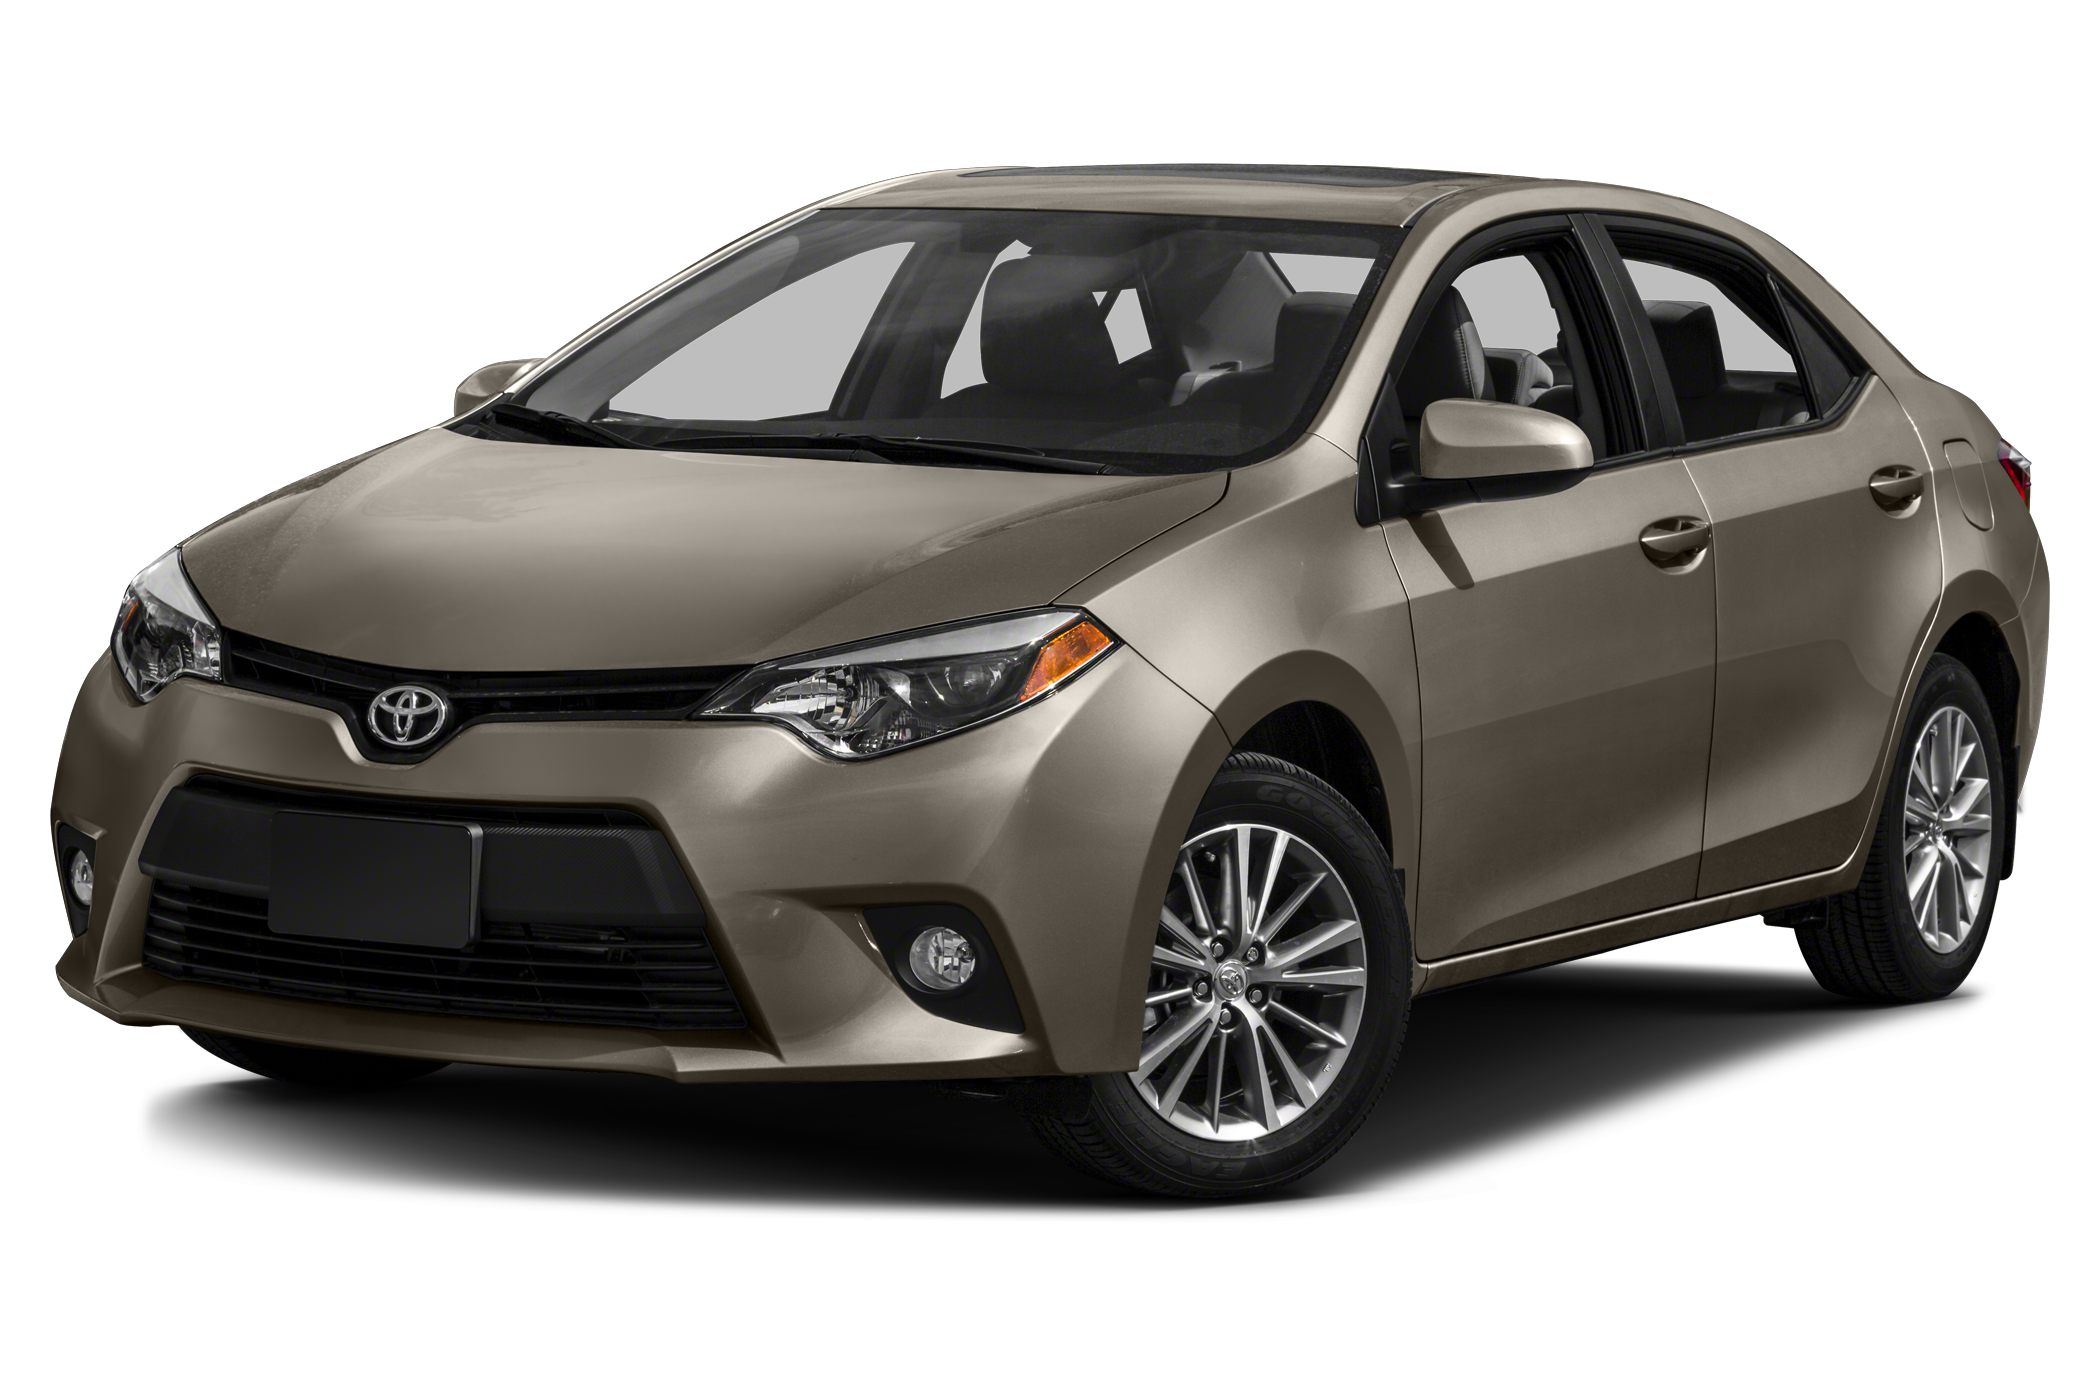 2015 Toyota Corolla L Sedan for sale in Allentown for $18,679 with 0 miles